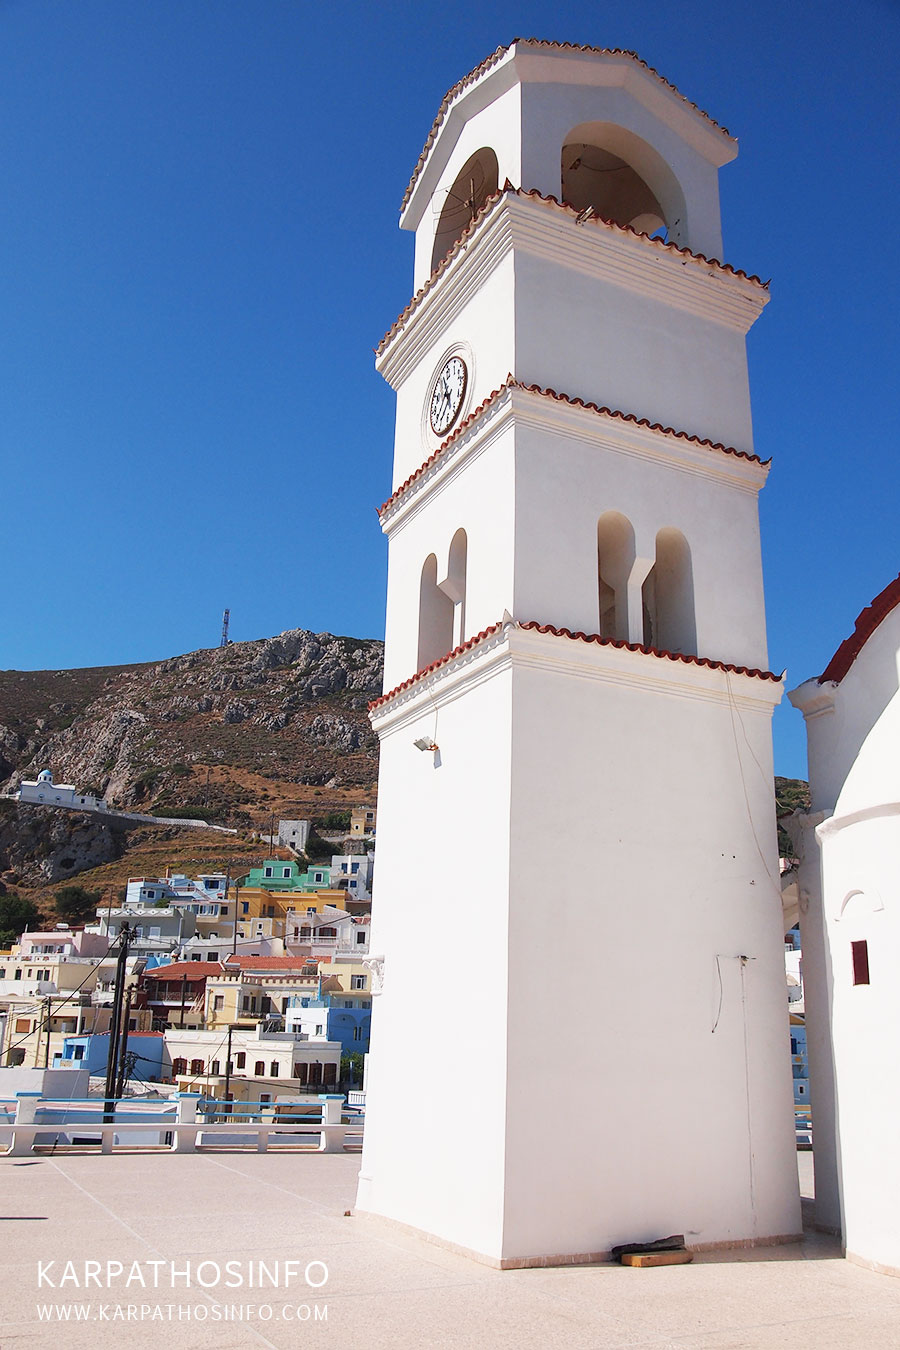 Kimissi tis Theotokou Menetes, the bell tower of the church